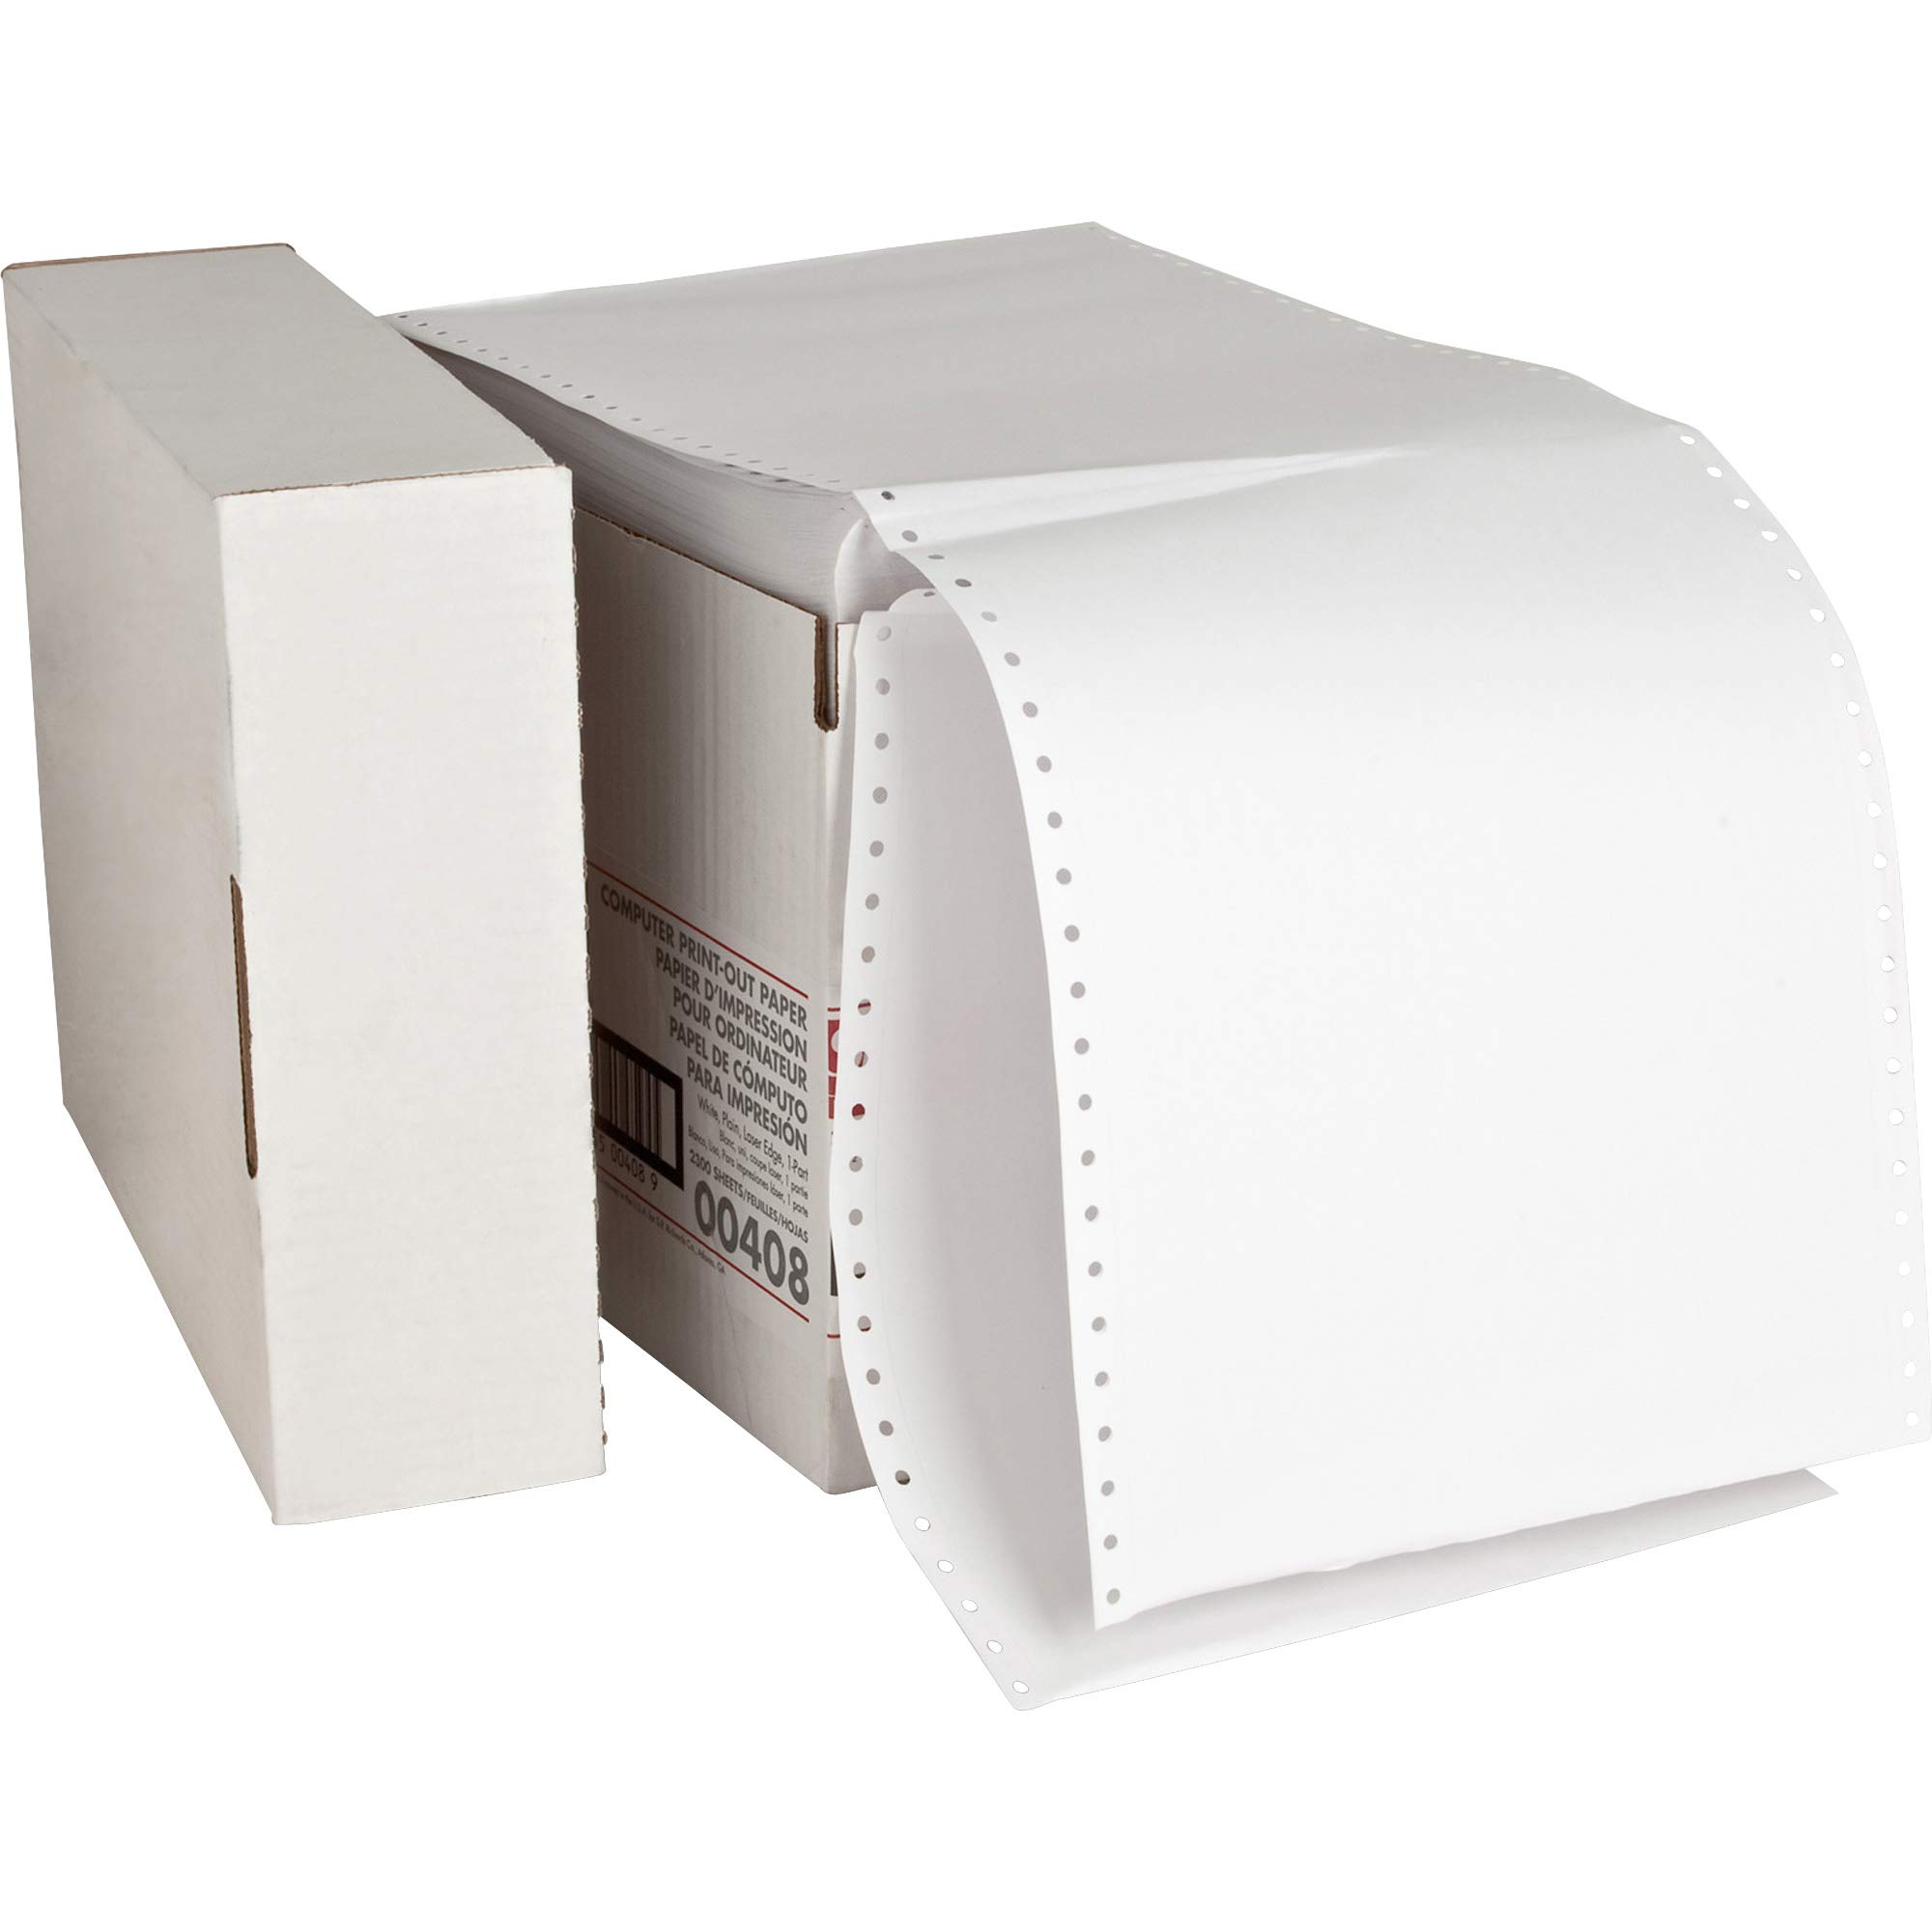 Sparco Computer Paper, Plain, 20 lbs., 9-1/2 x 11 Inches, 2300 Count, White by Sparco